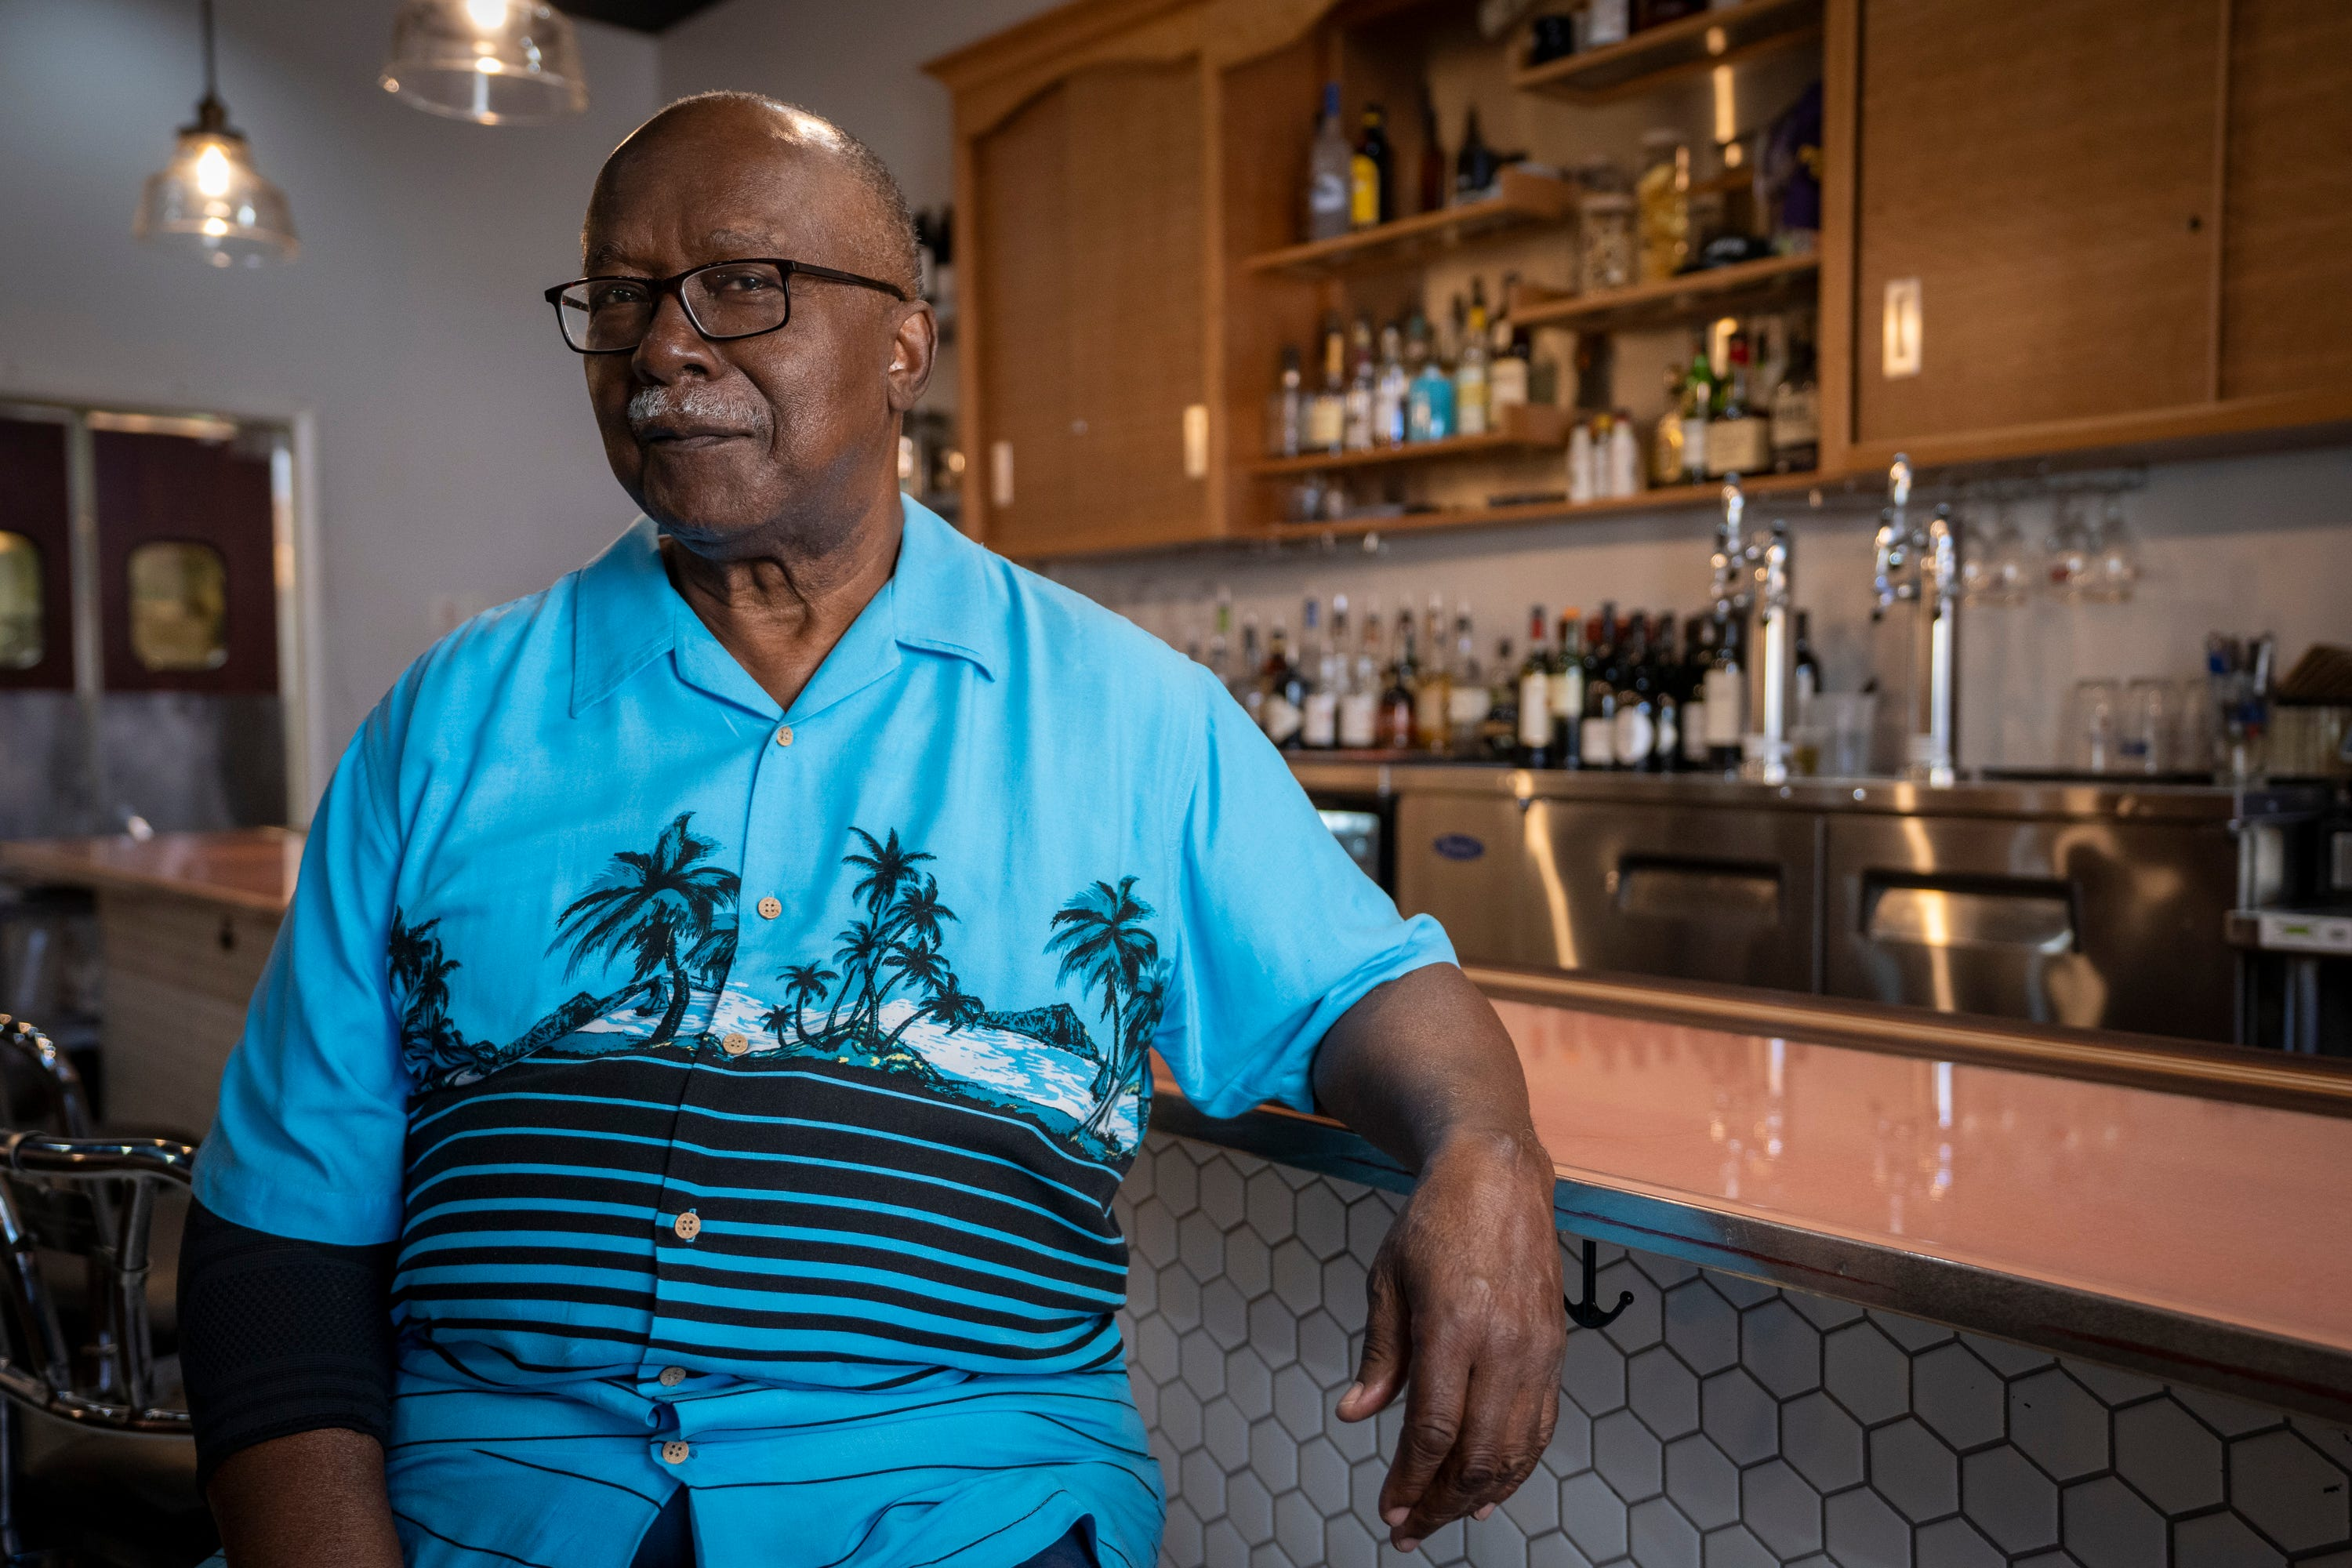 """David Williamson sits for a portrait at the original McCrory's Five and Dime lunch counter, restored and preserved by the owners of Kounter, in Rock Hill, S.C., on Aug. 12, 2021. On Feb. 1, 1961, 10 young civil rights activists were convicted of trespassing for staging a sit-in at a department store lunch counter in Rock Hill, South Carolina. The judge imposed a fine of $100 each or 30 days hard labor on a chain gang. Nine of the activists opted for jail time, setting in motion the movement's """"jail, no bail'' strategy to push back against paying fines for fighting segregation."""